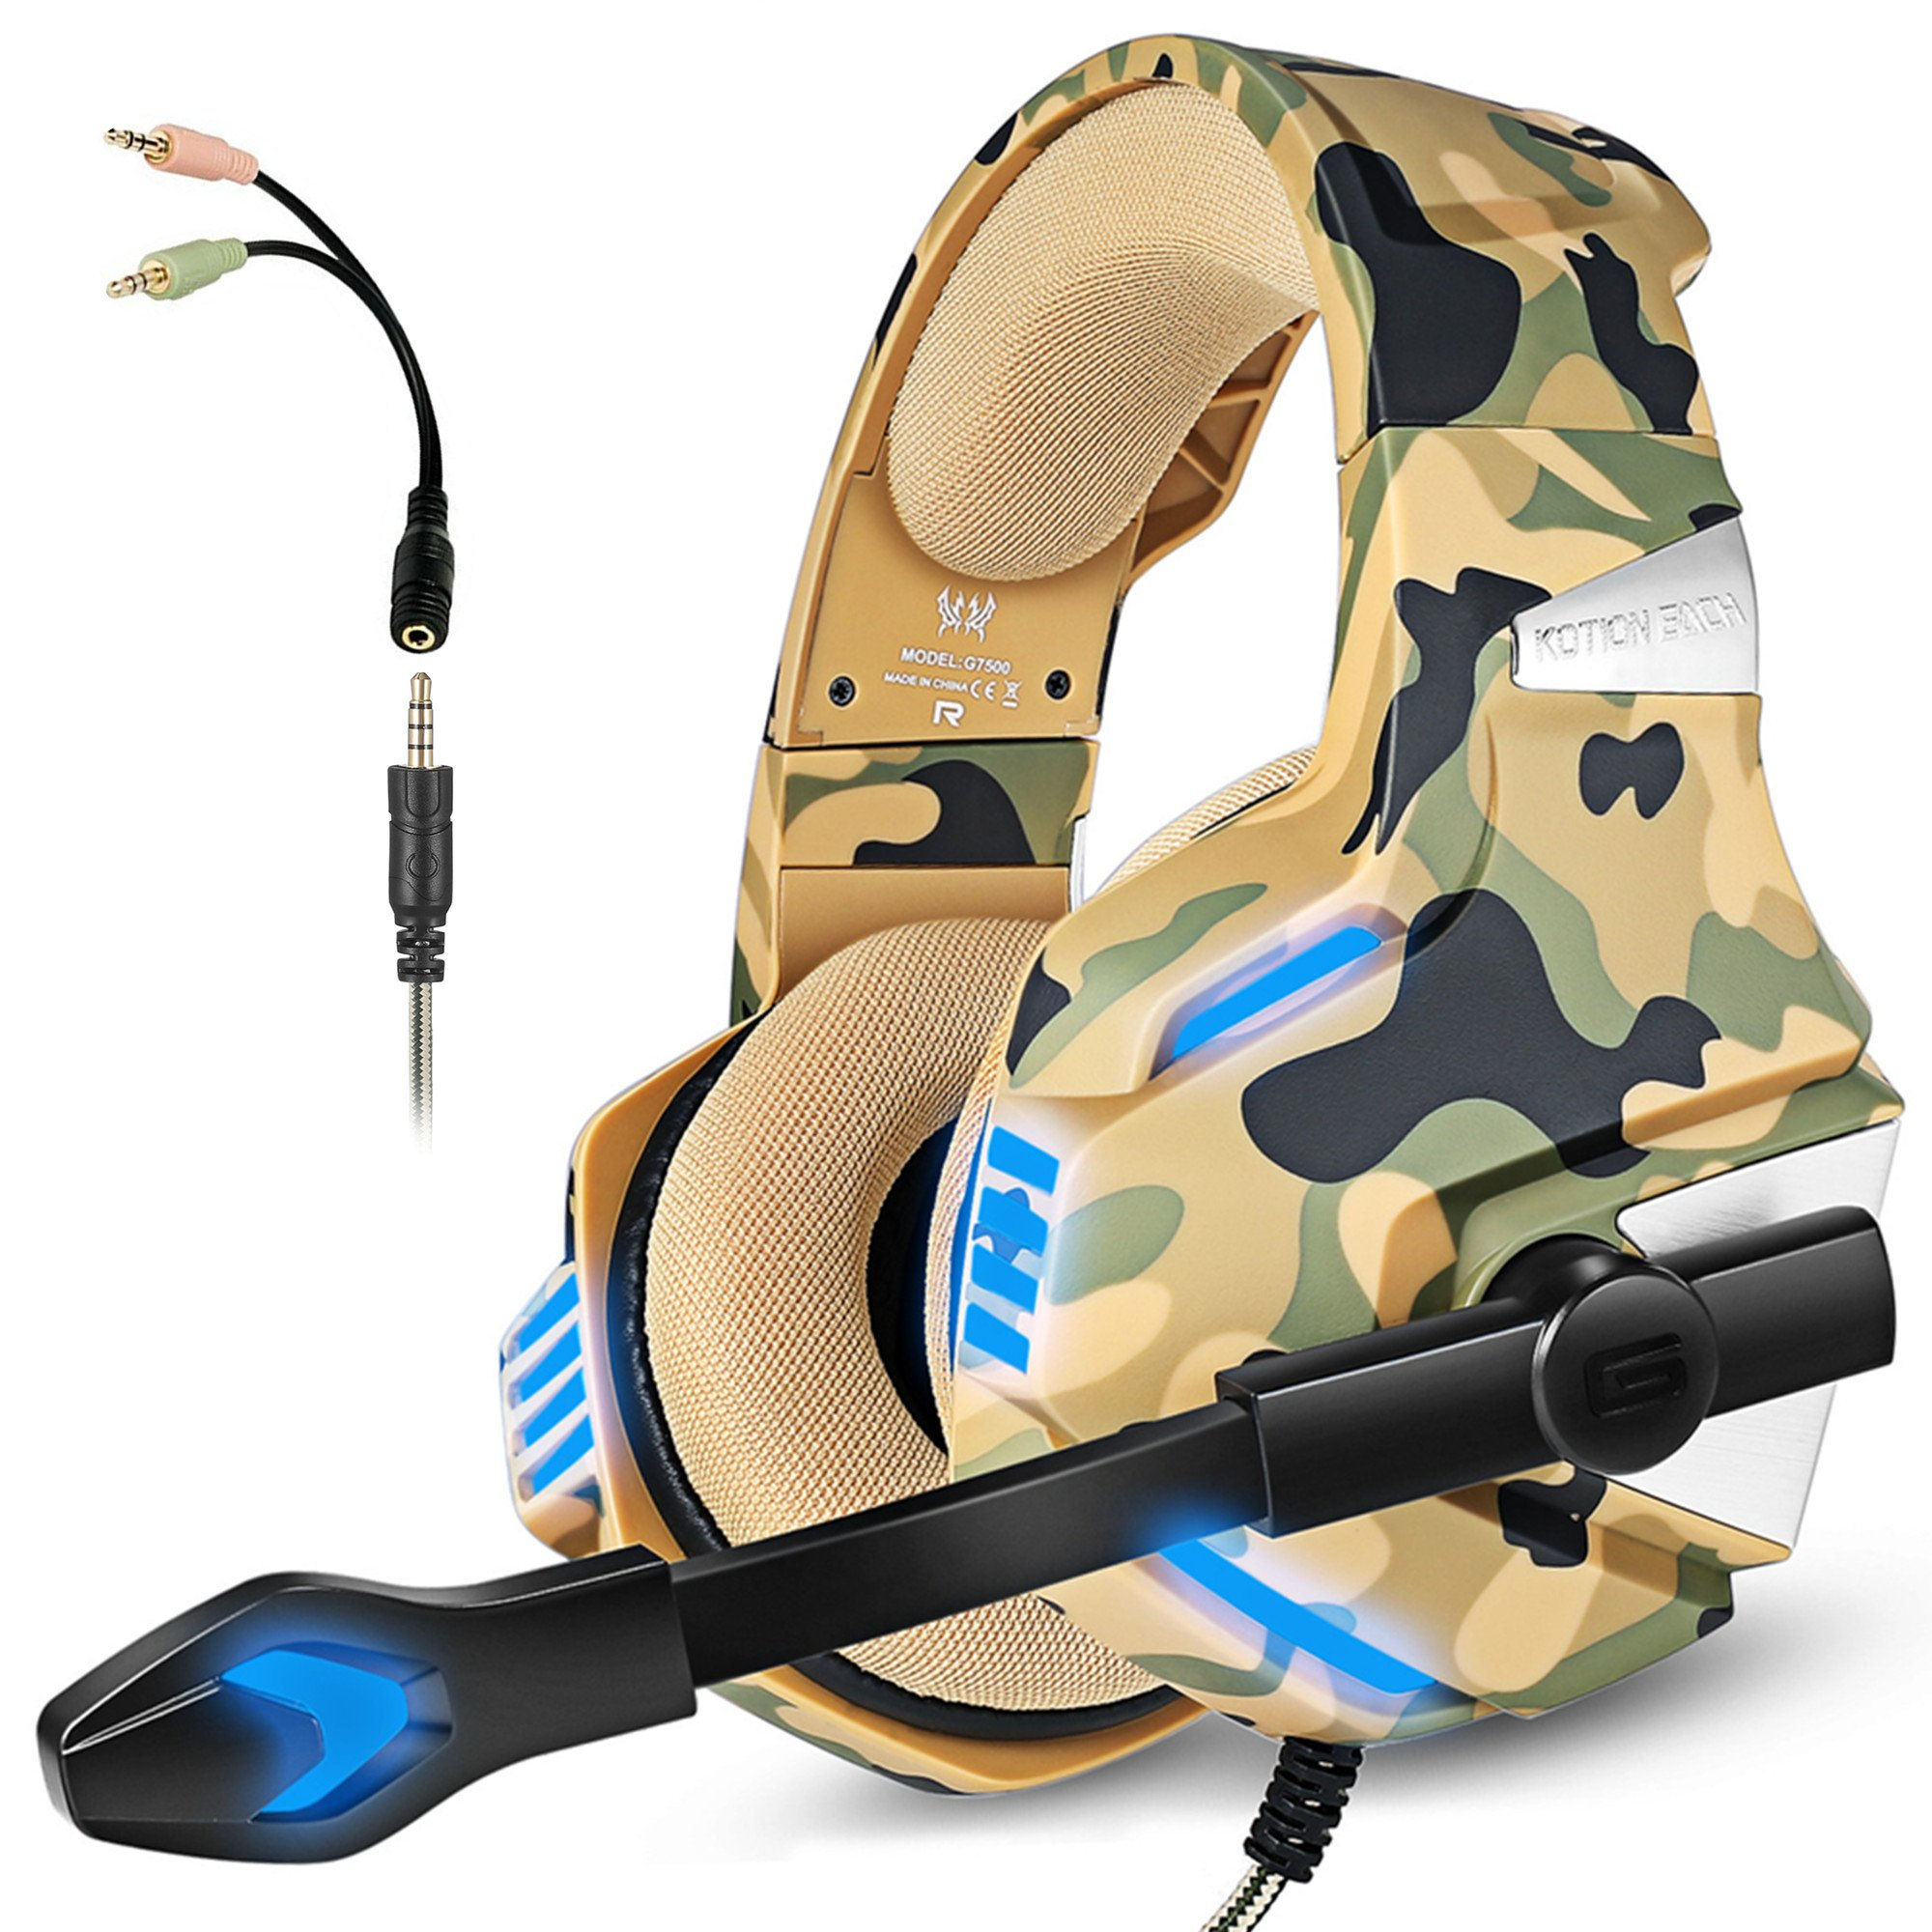 Gaming Headset with Mic for PS4 Xbox One Controller PC Nintendo Switch Tablet Smartphone, camouflage Stereo Over Ear Headphones Bass Surround Noise Canceling Microphone LED Light (ONE YEAR WARRANTY)